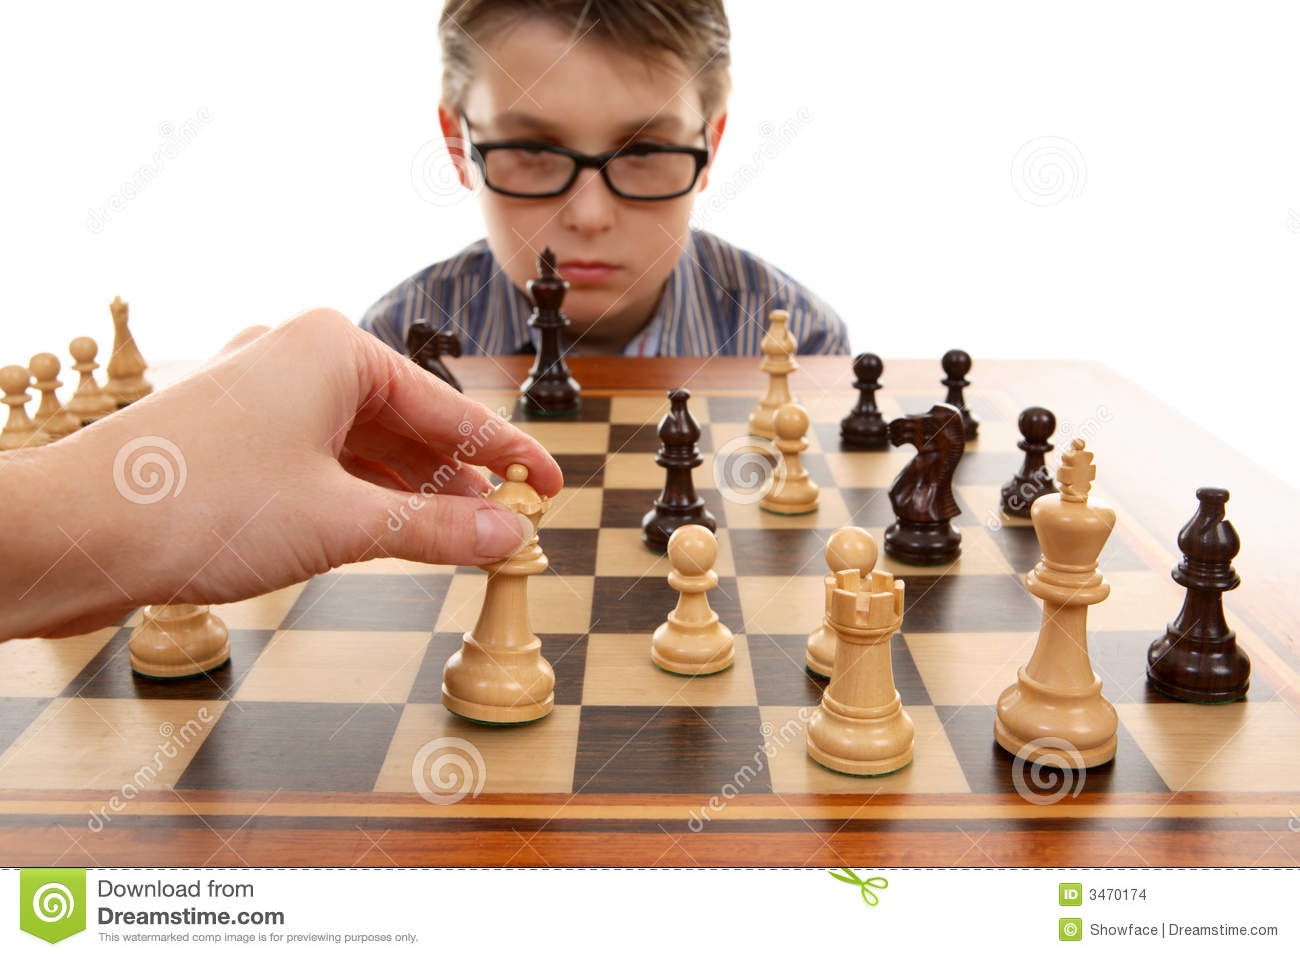 Playing Chess Stock Images - Image: 3470174